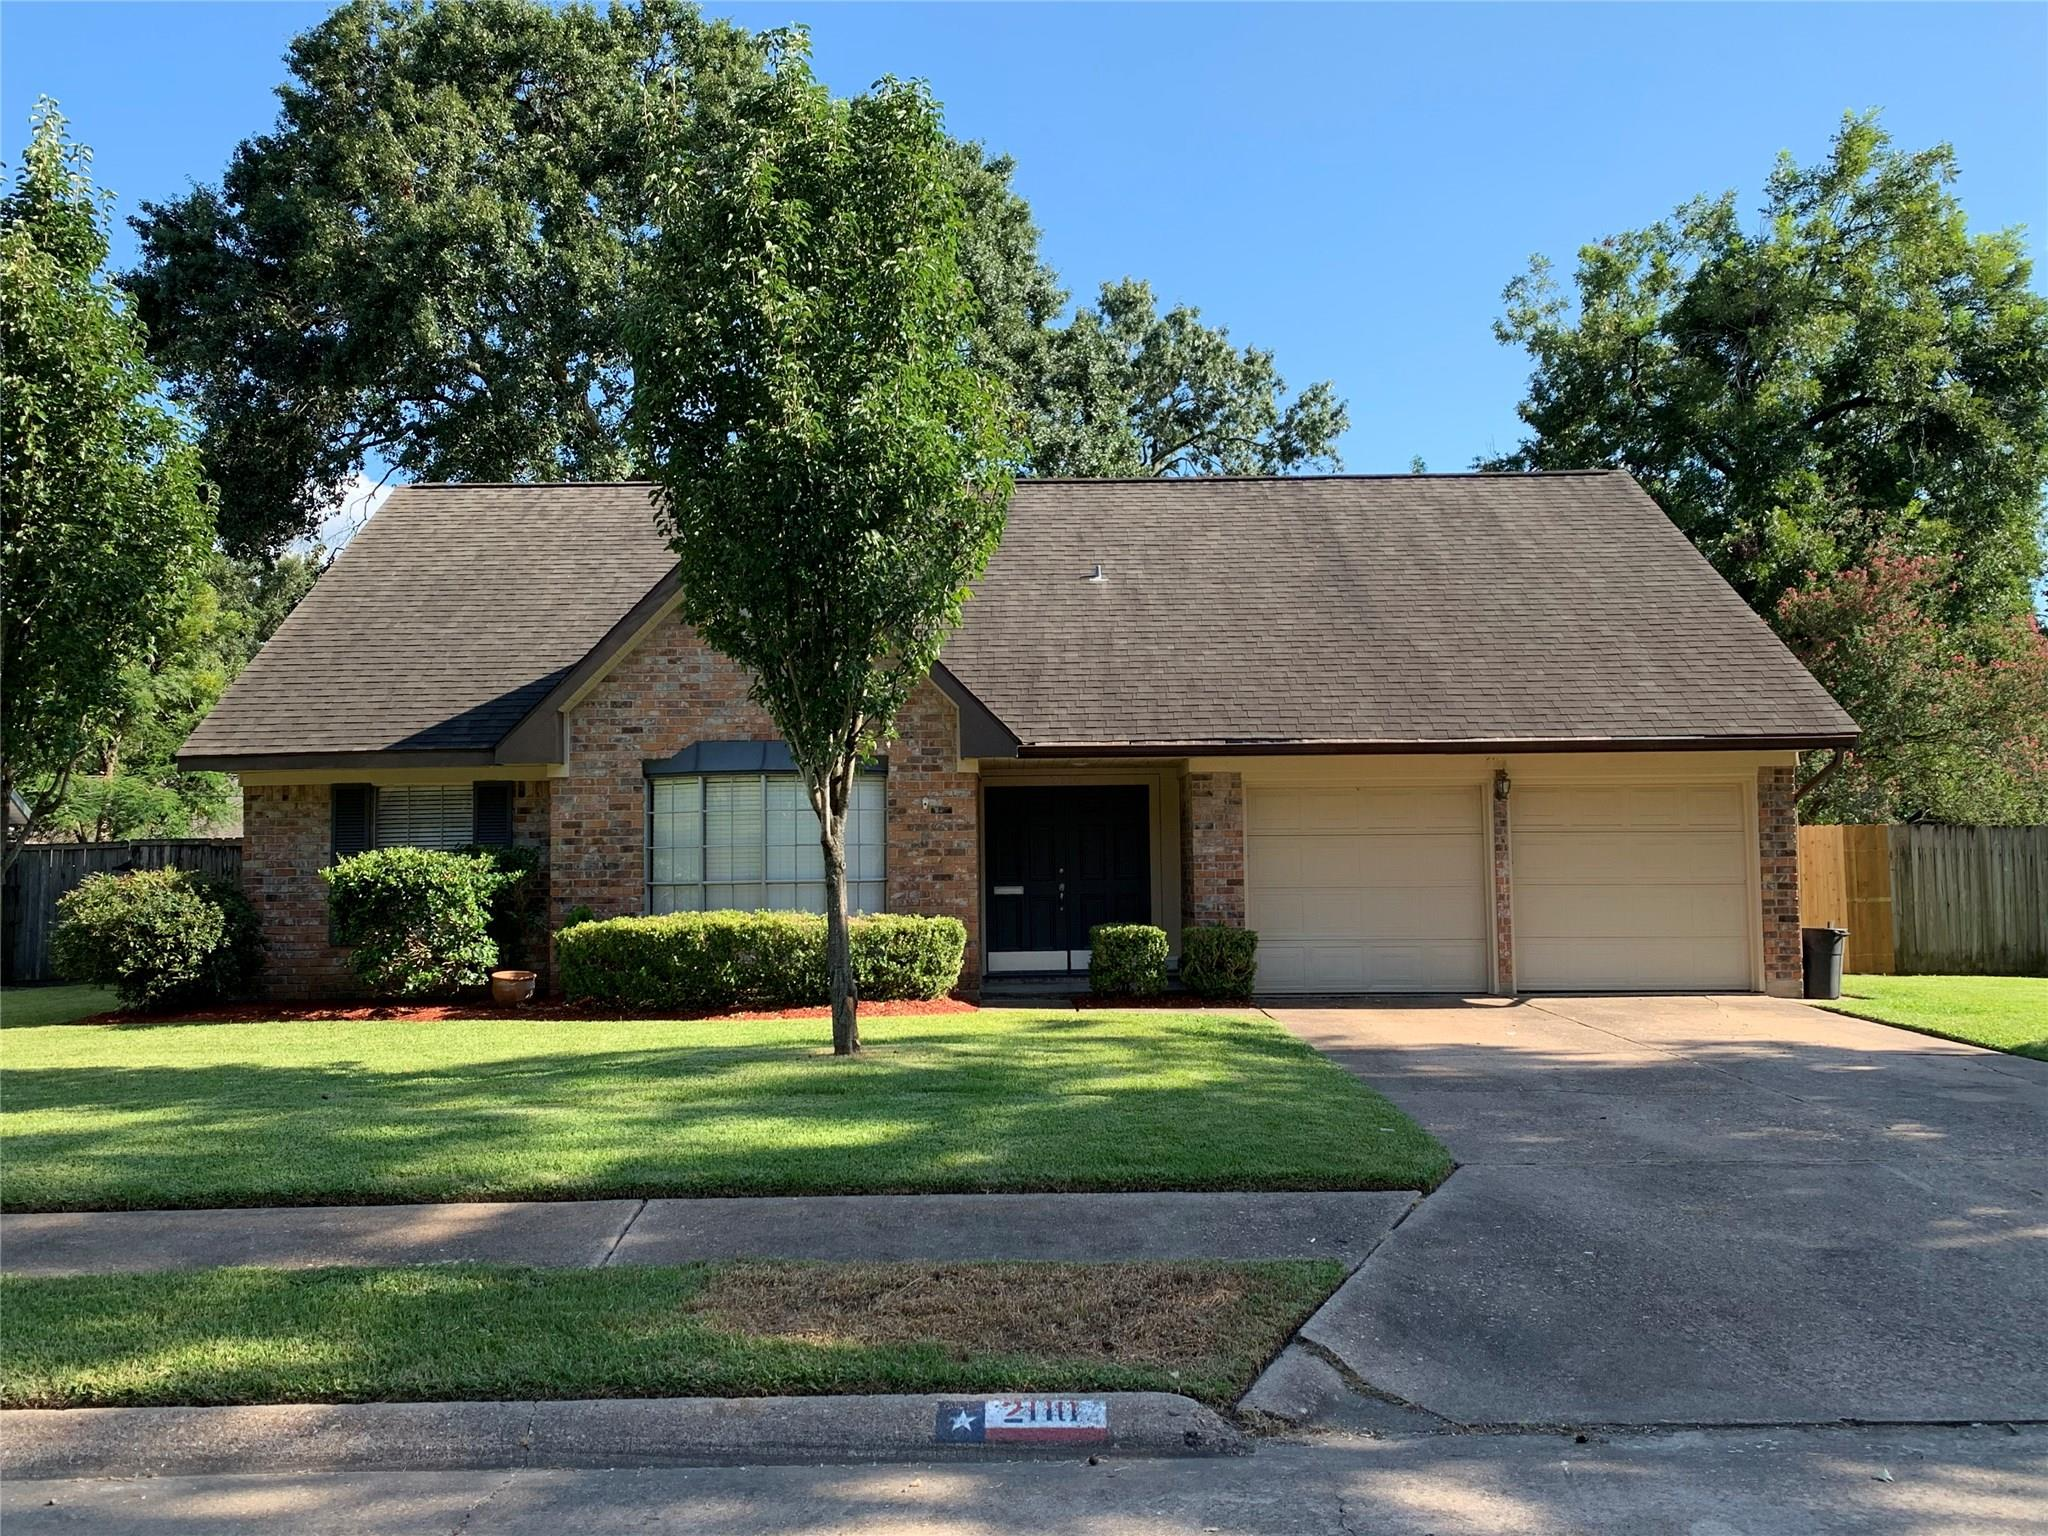 2110 N Fisher Court Property Photo - Pasadena, TX real estate listing